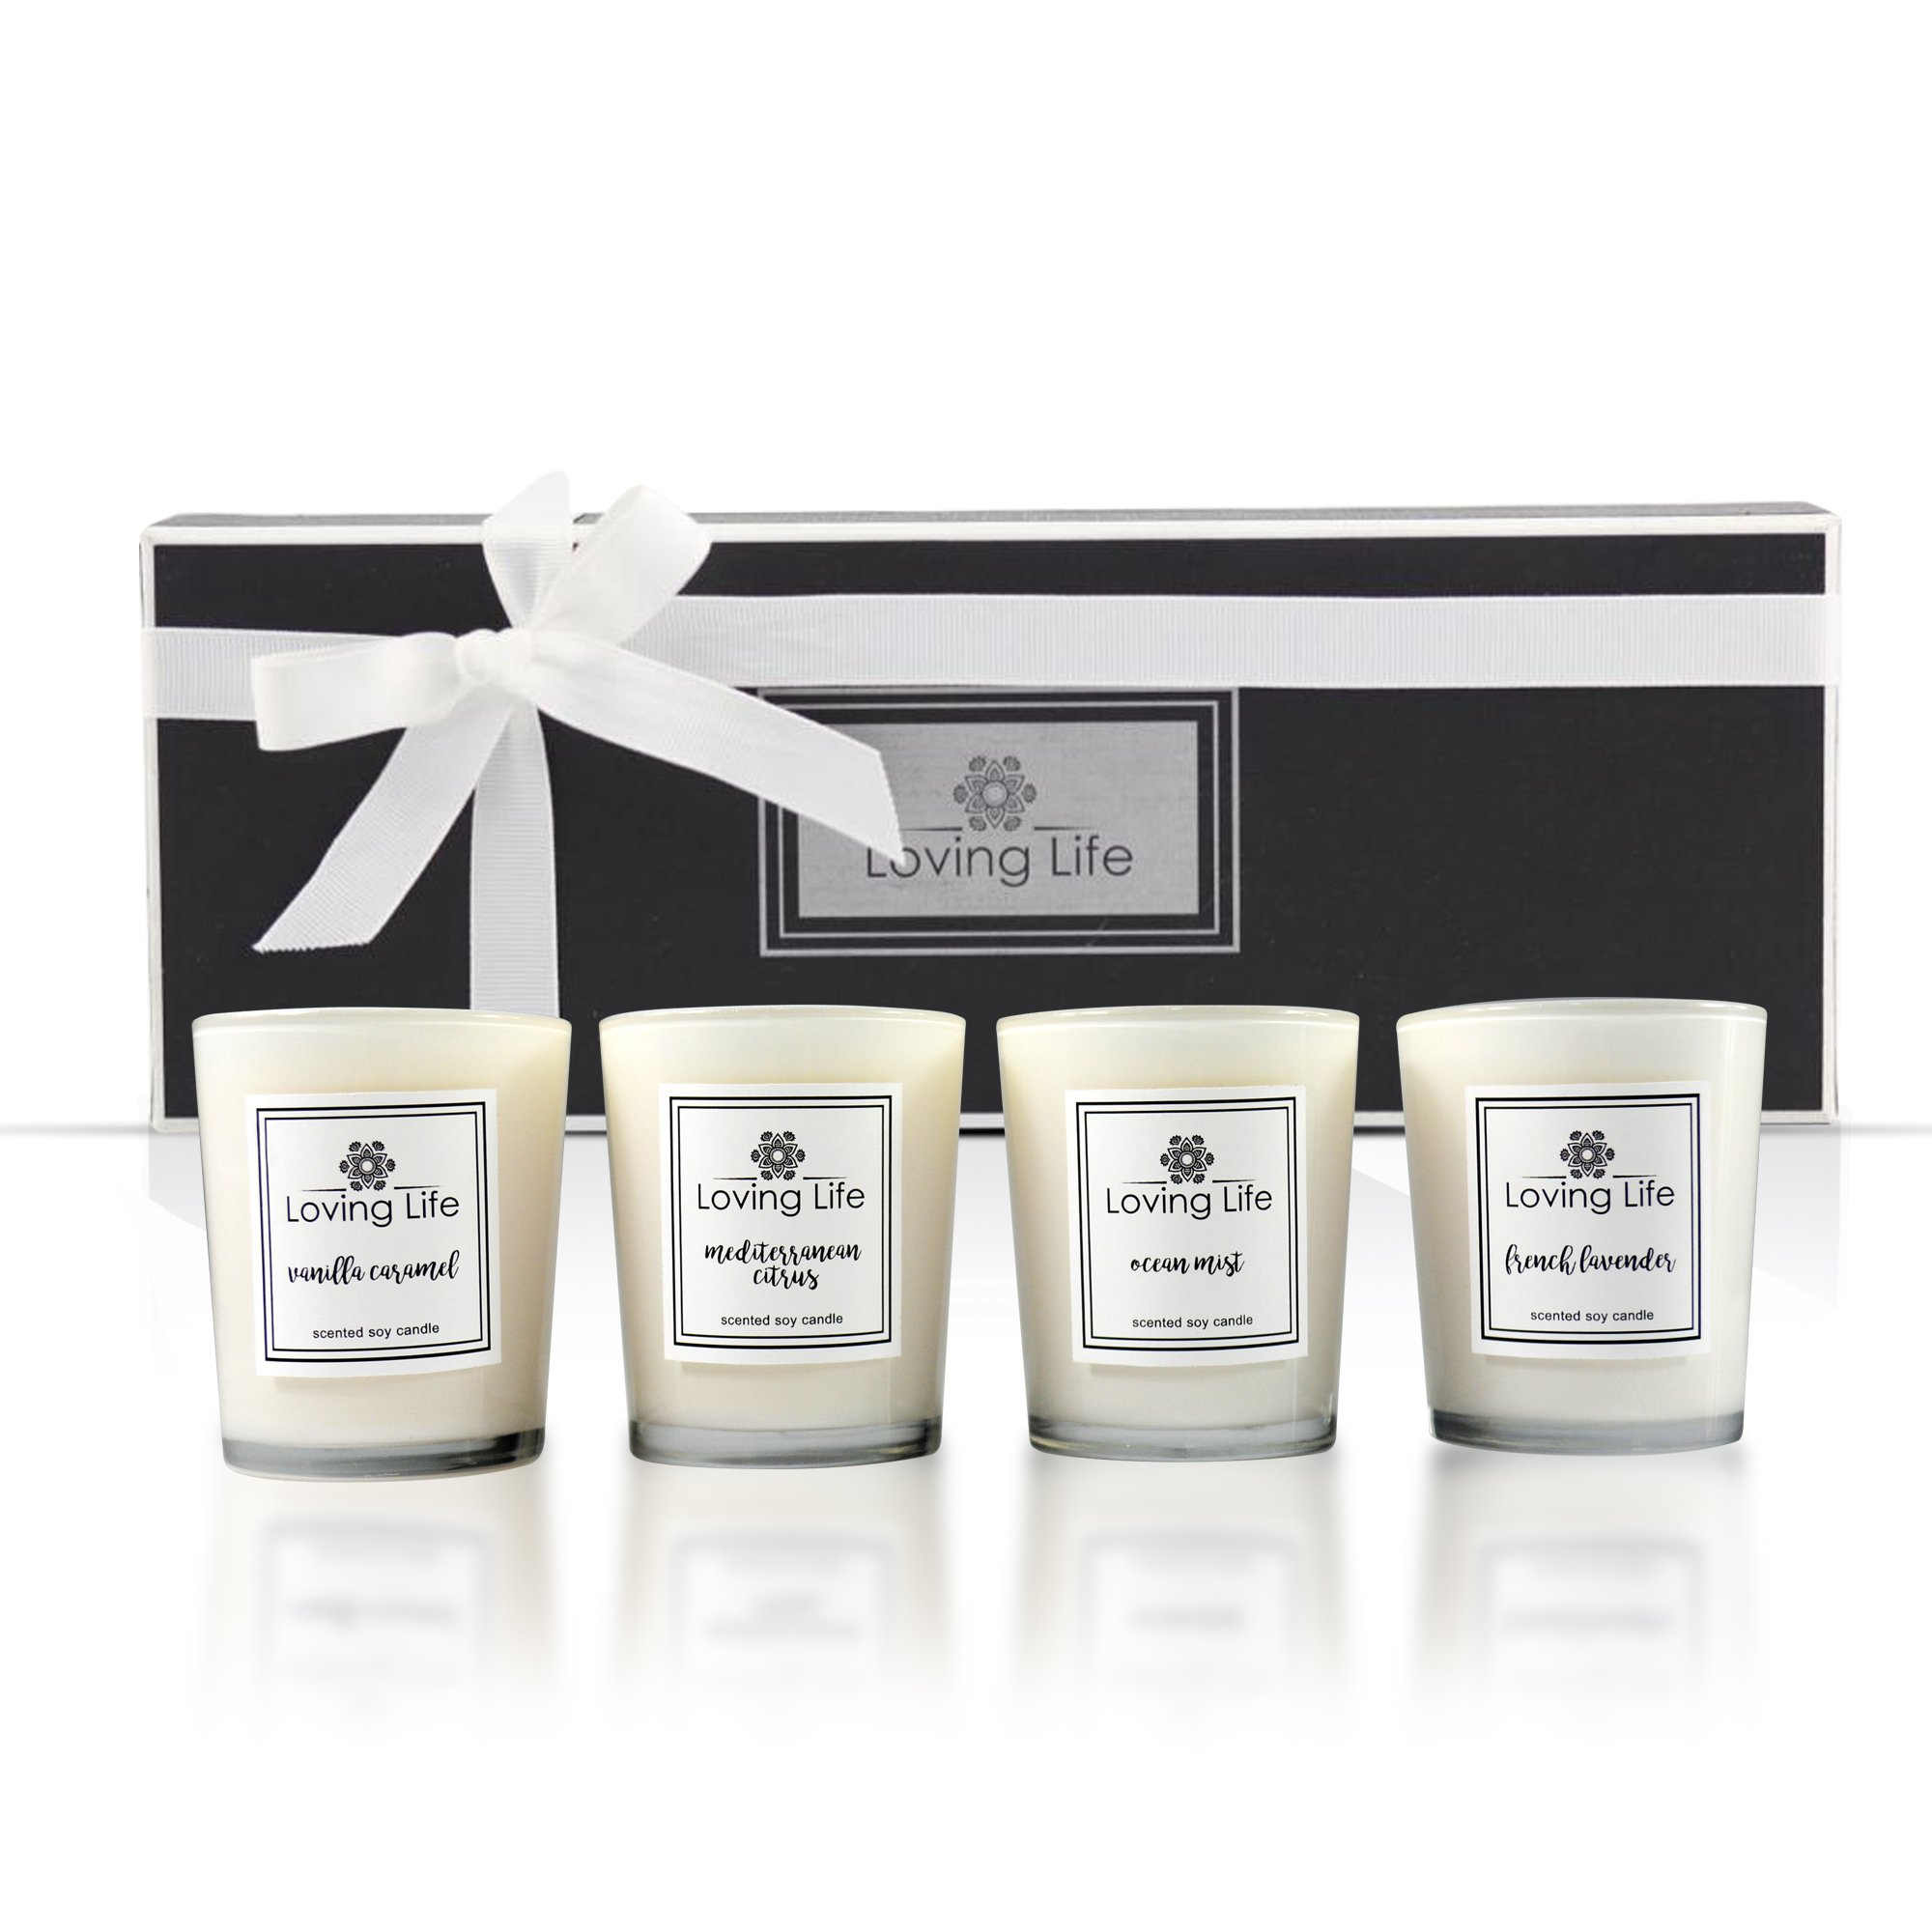 Scented Votive Candle Gift Set Natural Soy Wax Candles (Lavender, Citrus, Ocean Mist and Vanilla Caramel) for Relaxation - 4 x 2.8 Oz/80g